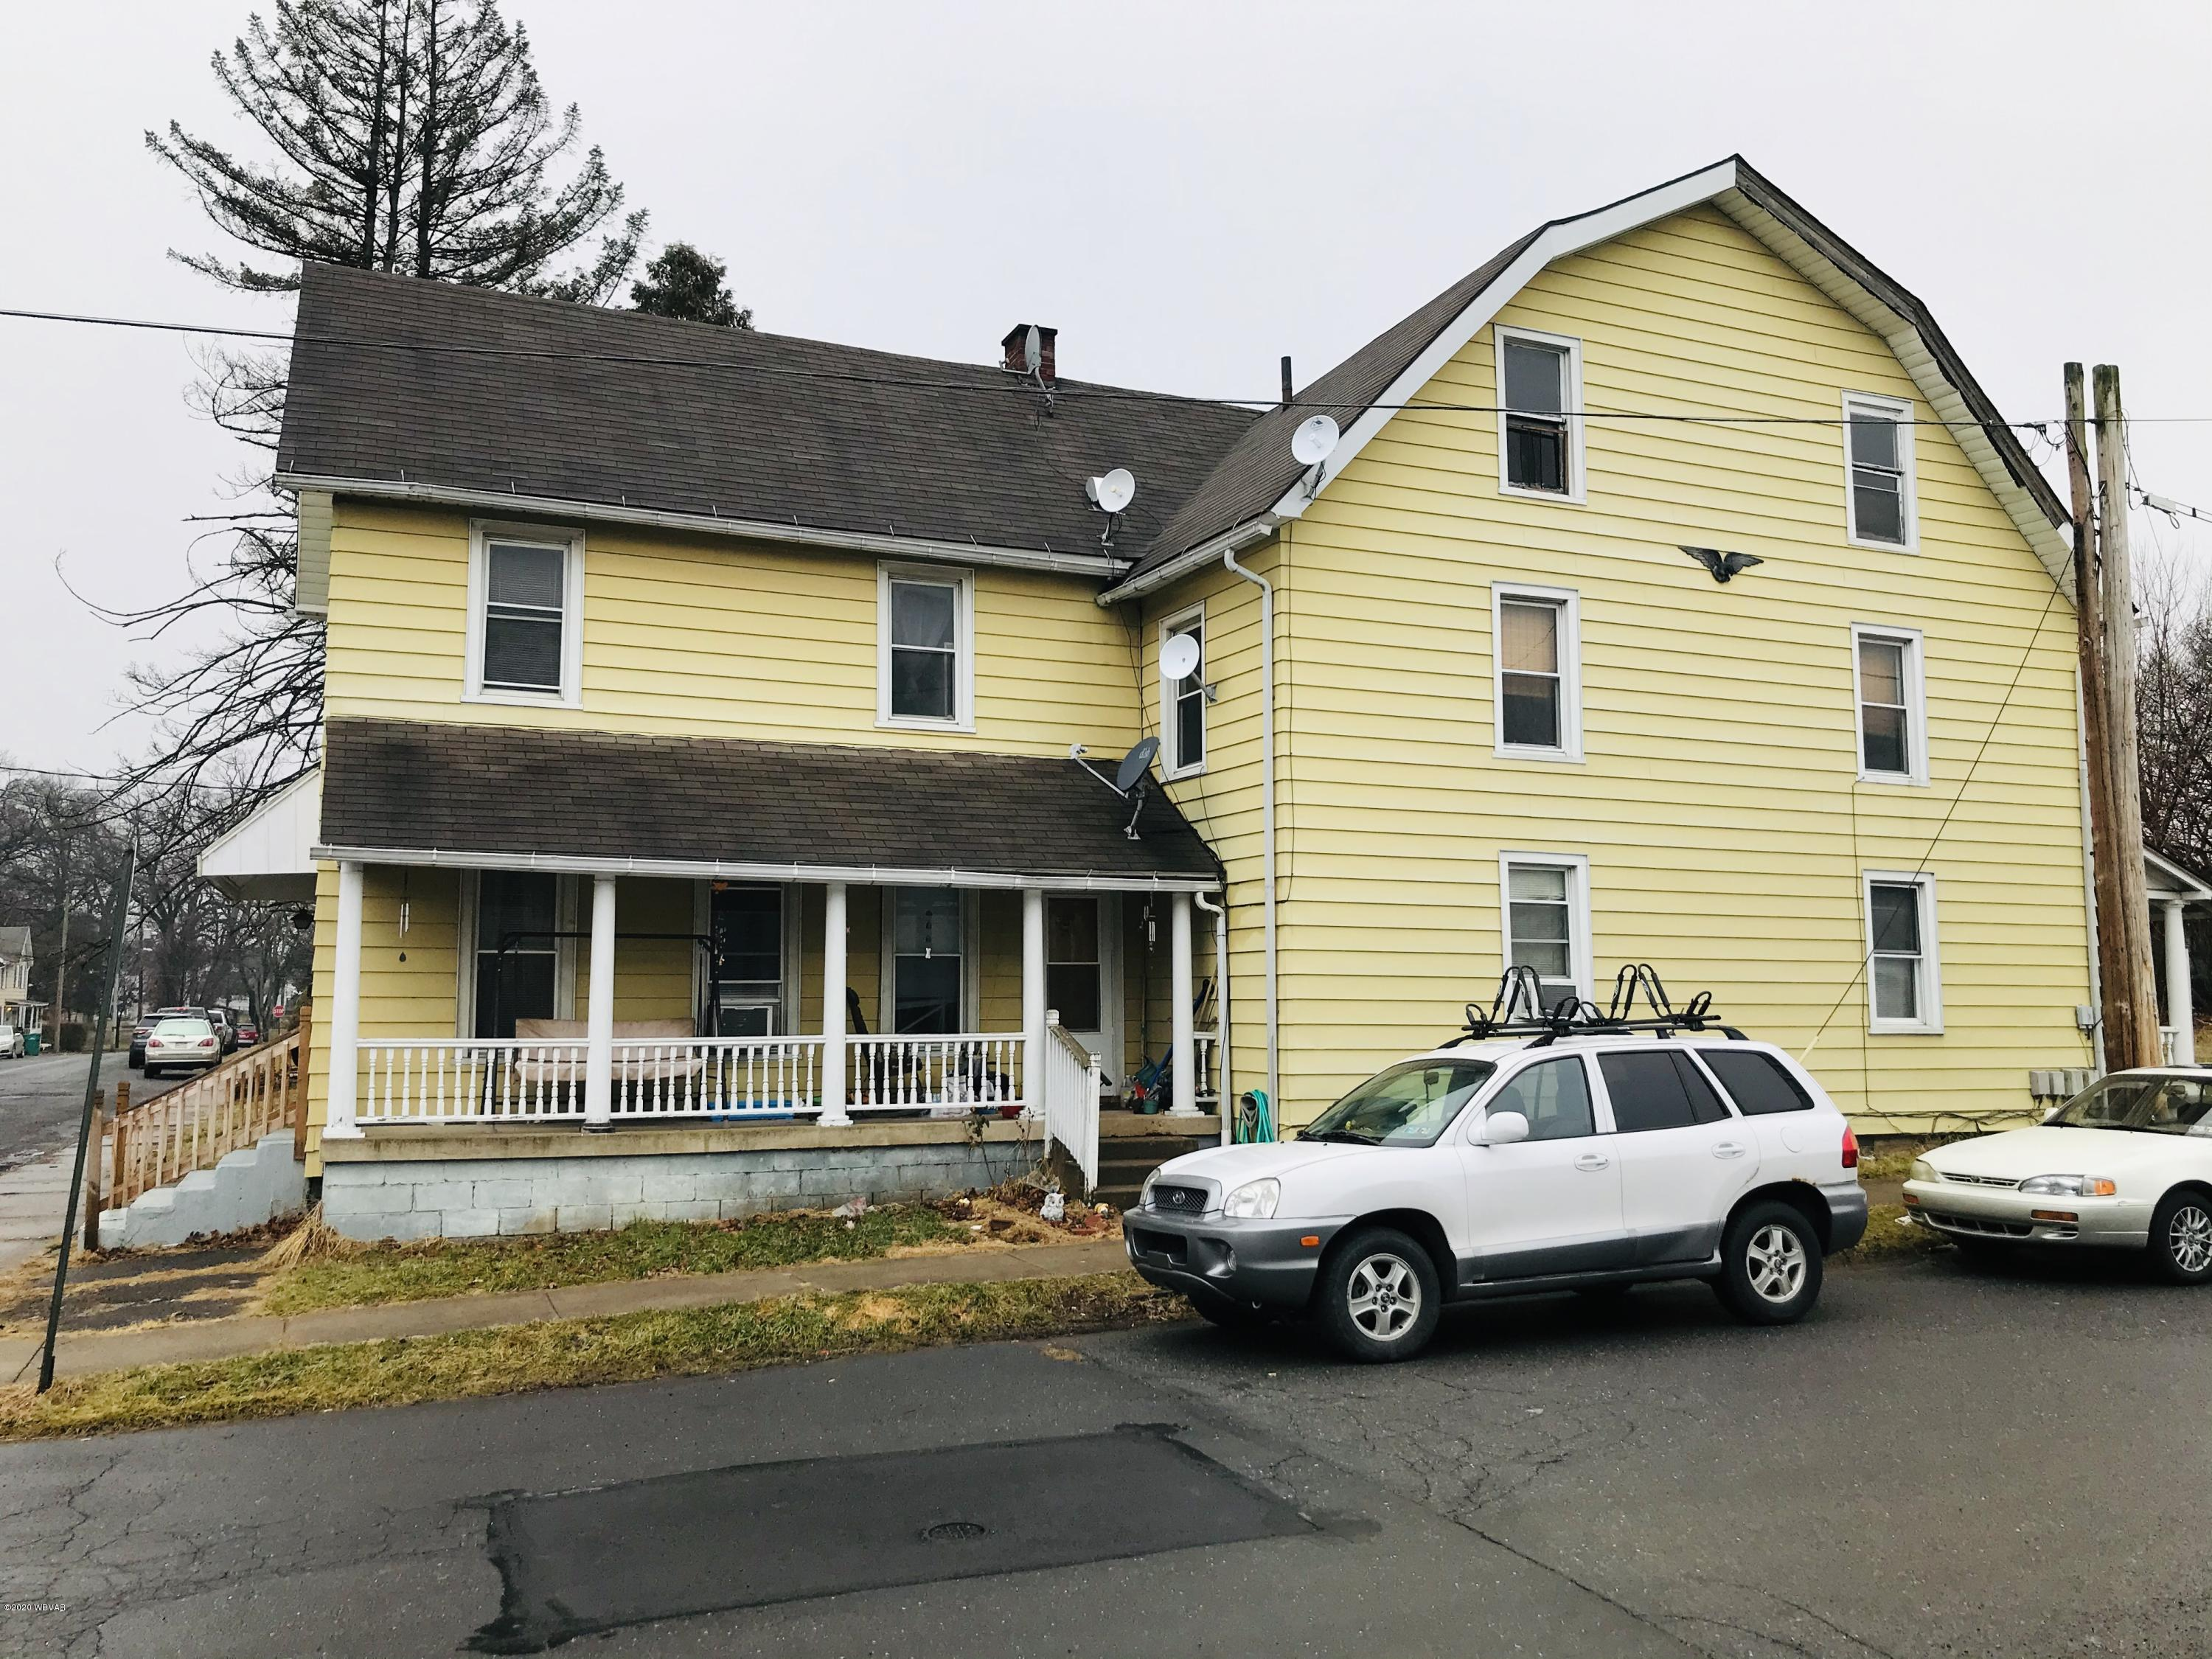 737-741 TUCKER STREET, Williamsport, PA 17701, ,Multi-units,For sale,TUCKER,WB-89573